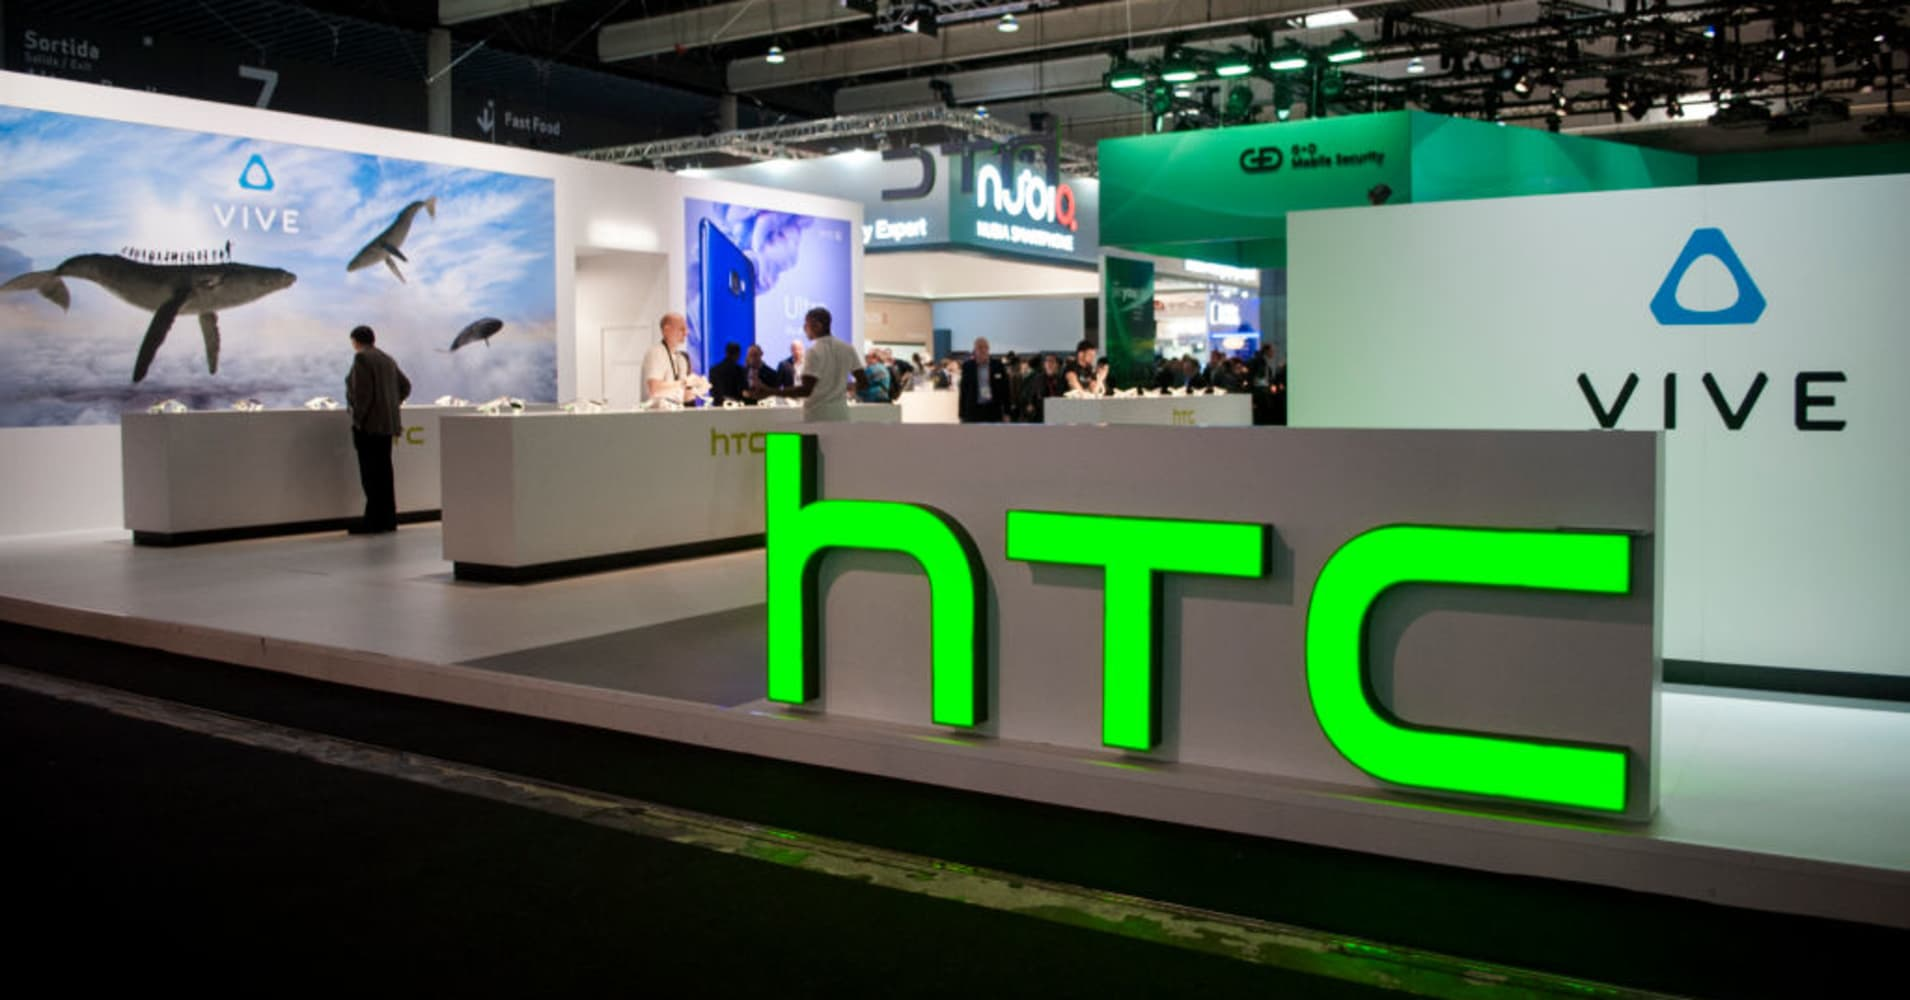 Htc Cuts 1500 Workers In Taiwan